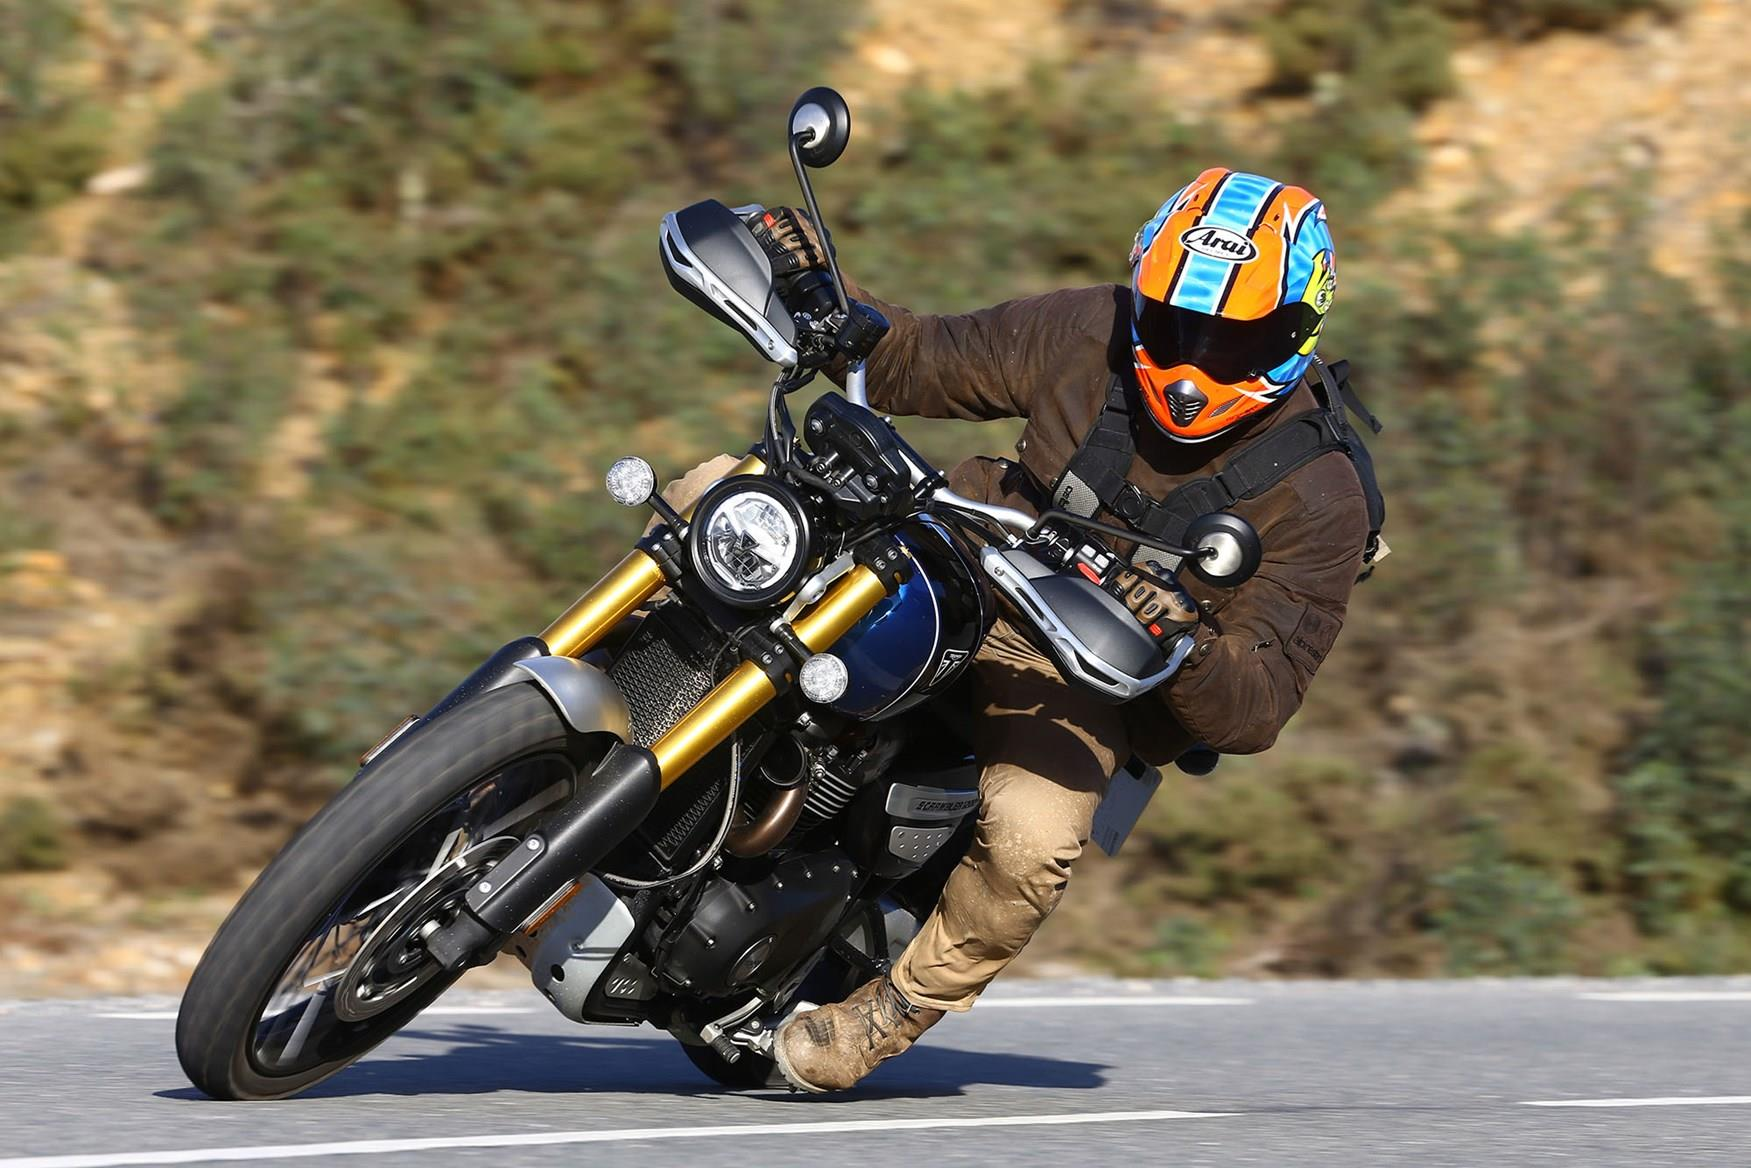 MCN's Michael Neeves rides the Scrambler 1200